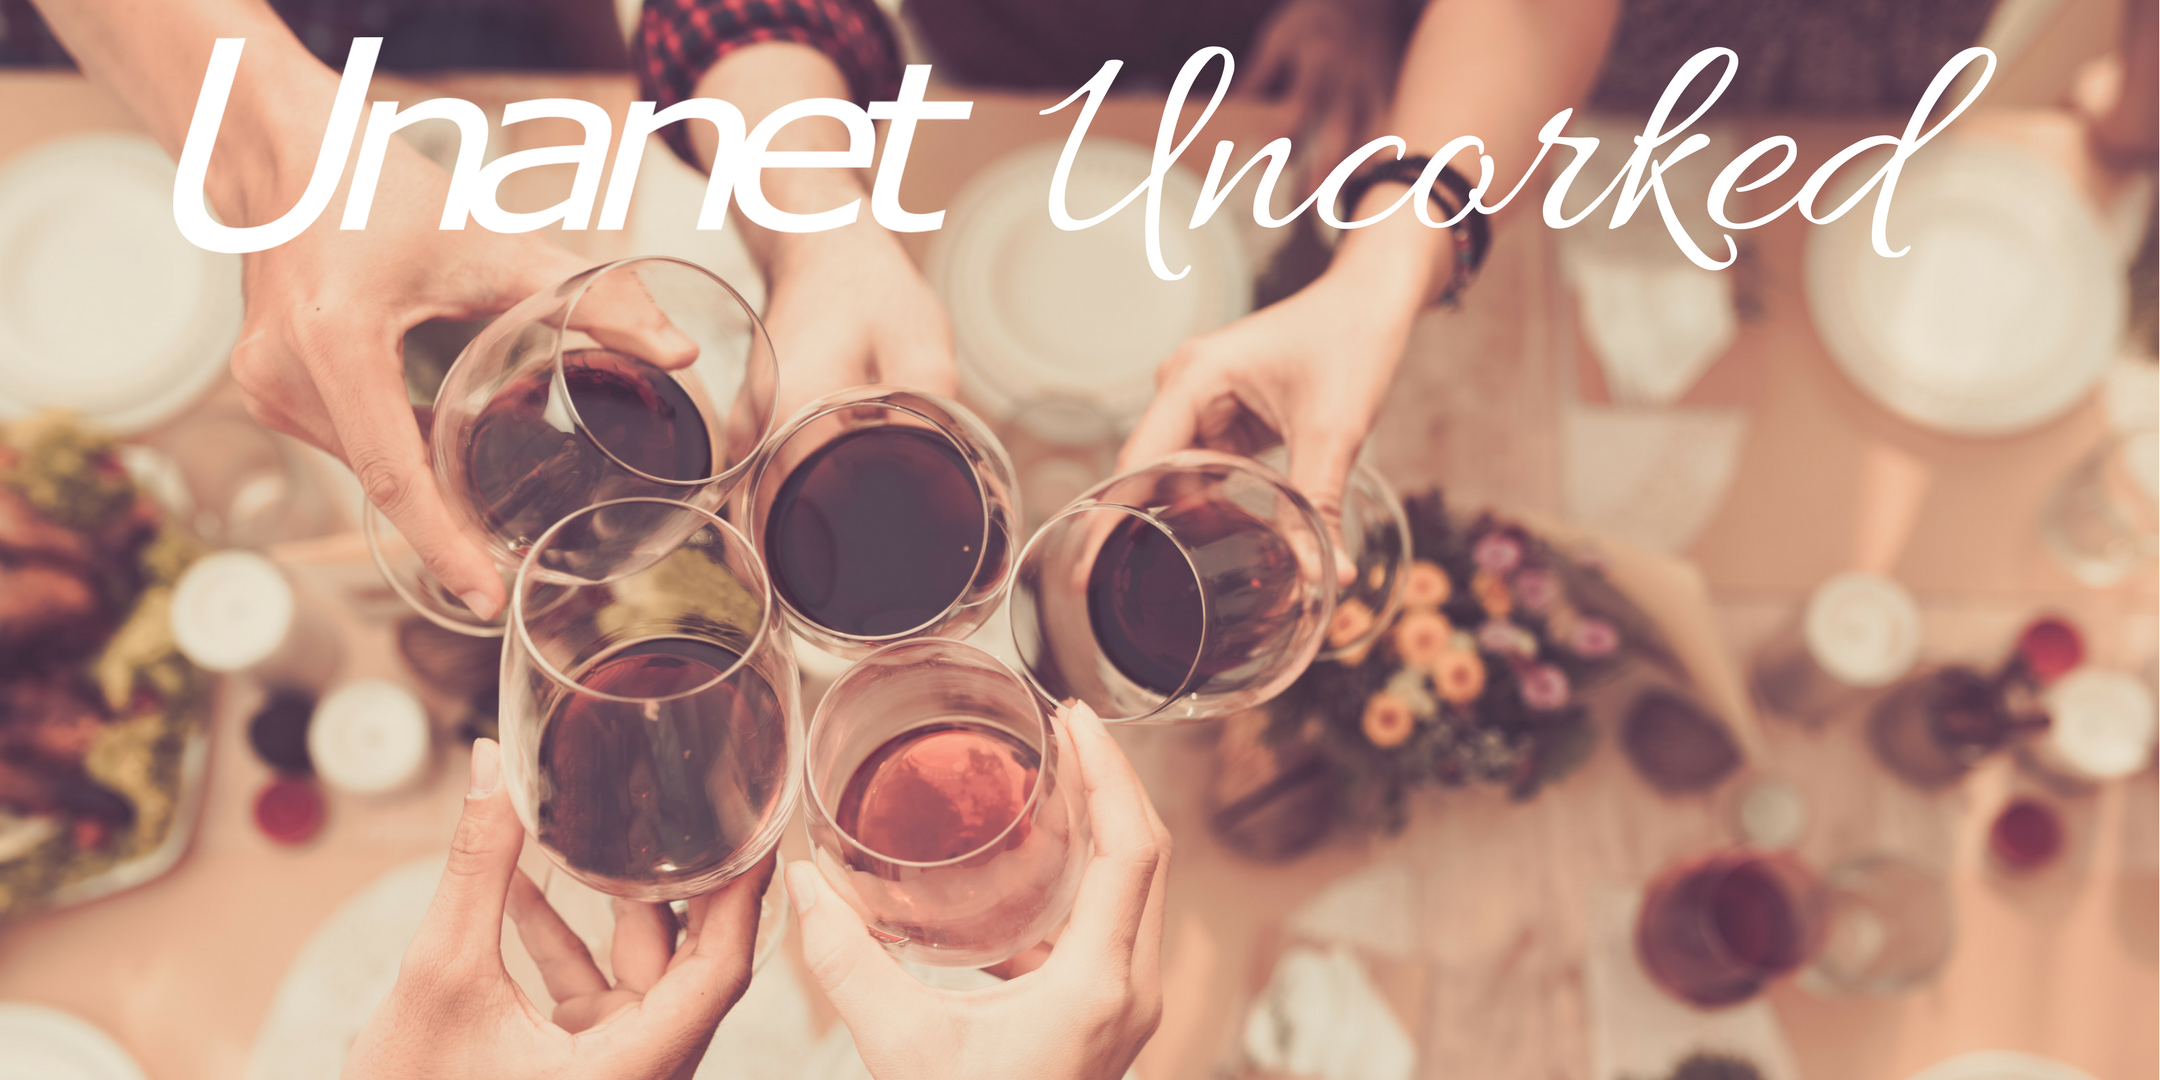 Uncorked image